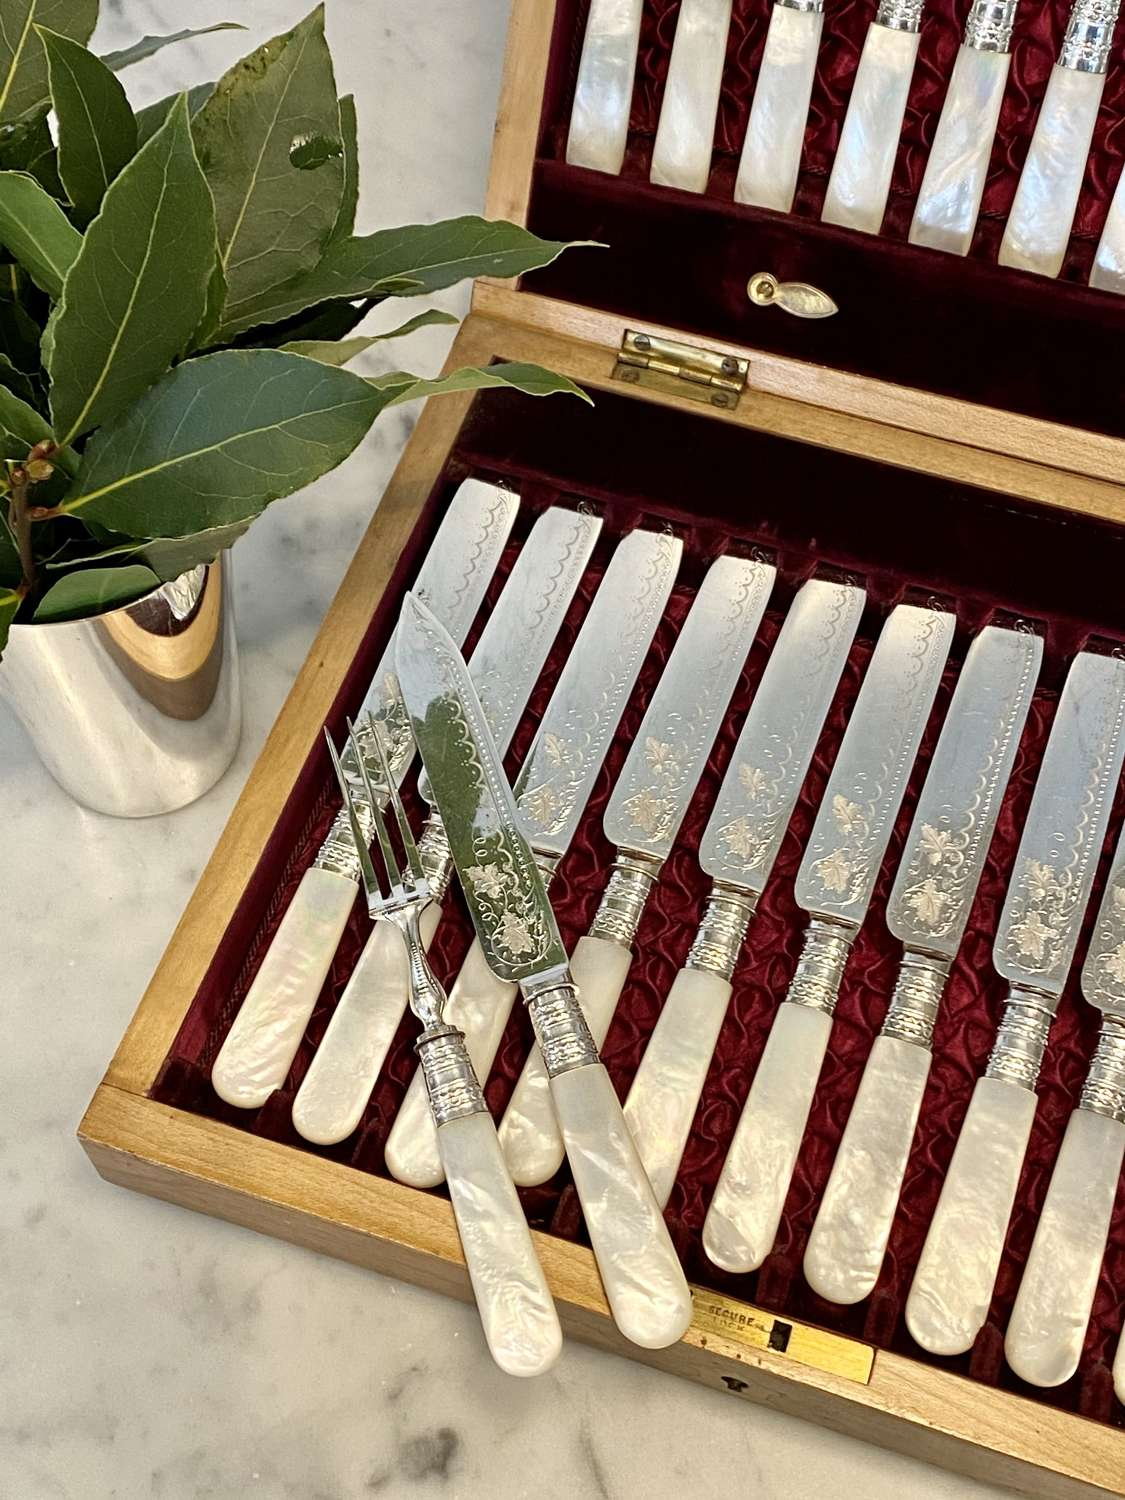 Victorian Mother of Pearl & silver plated cutlery for 12 guest